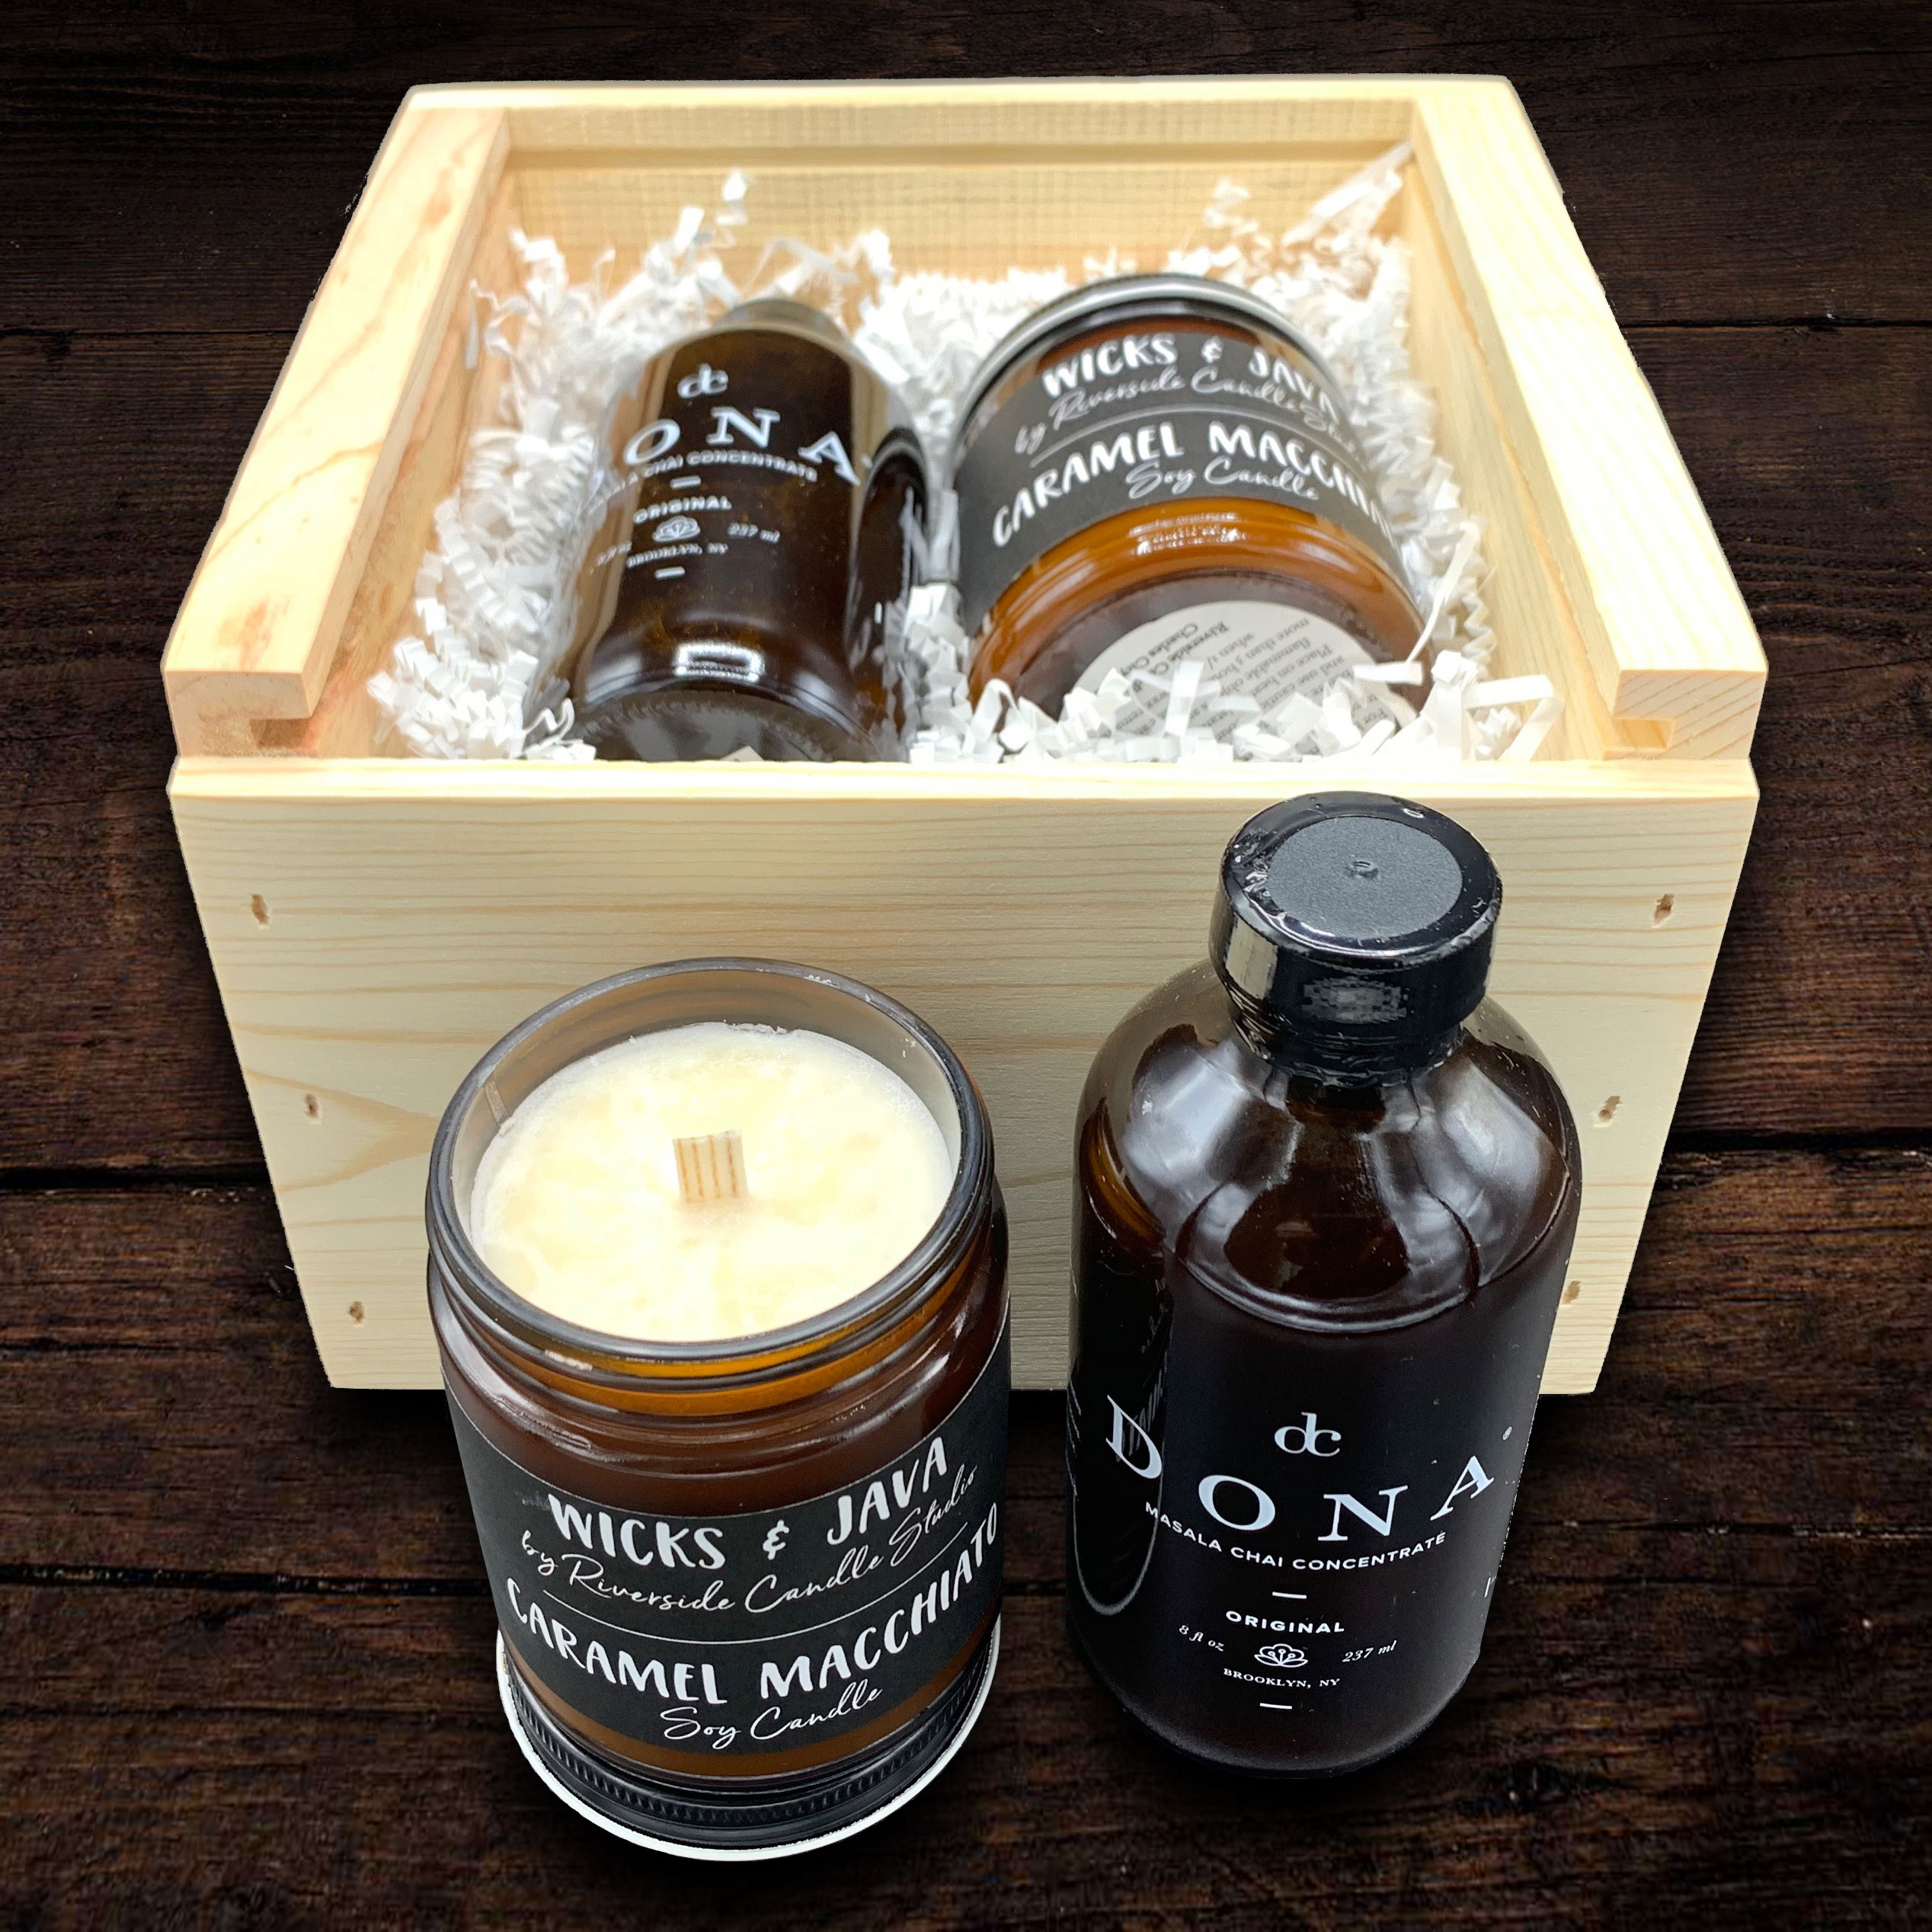 Perfect for any coffee lover, this gift box contains a deliciously scented caramel macchiato coffee